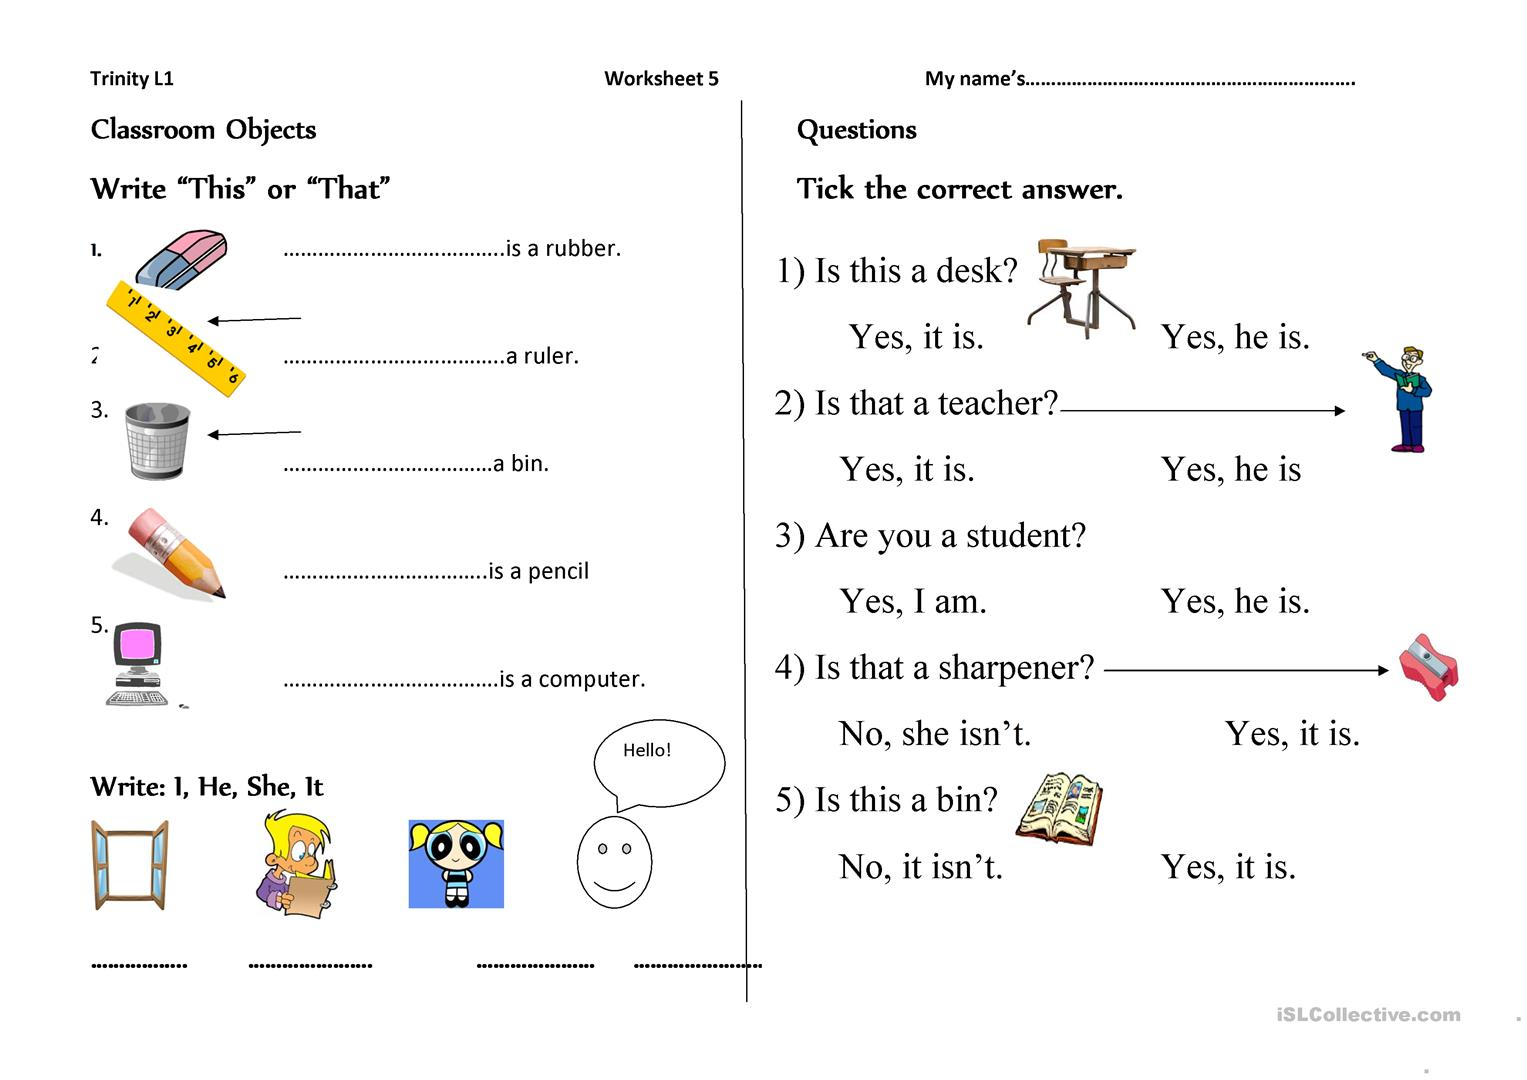 Trinity Level 1 Worksheet